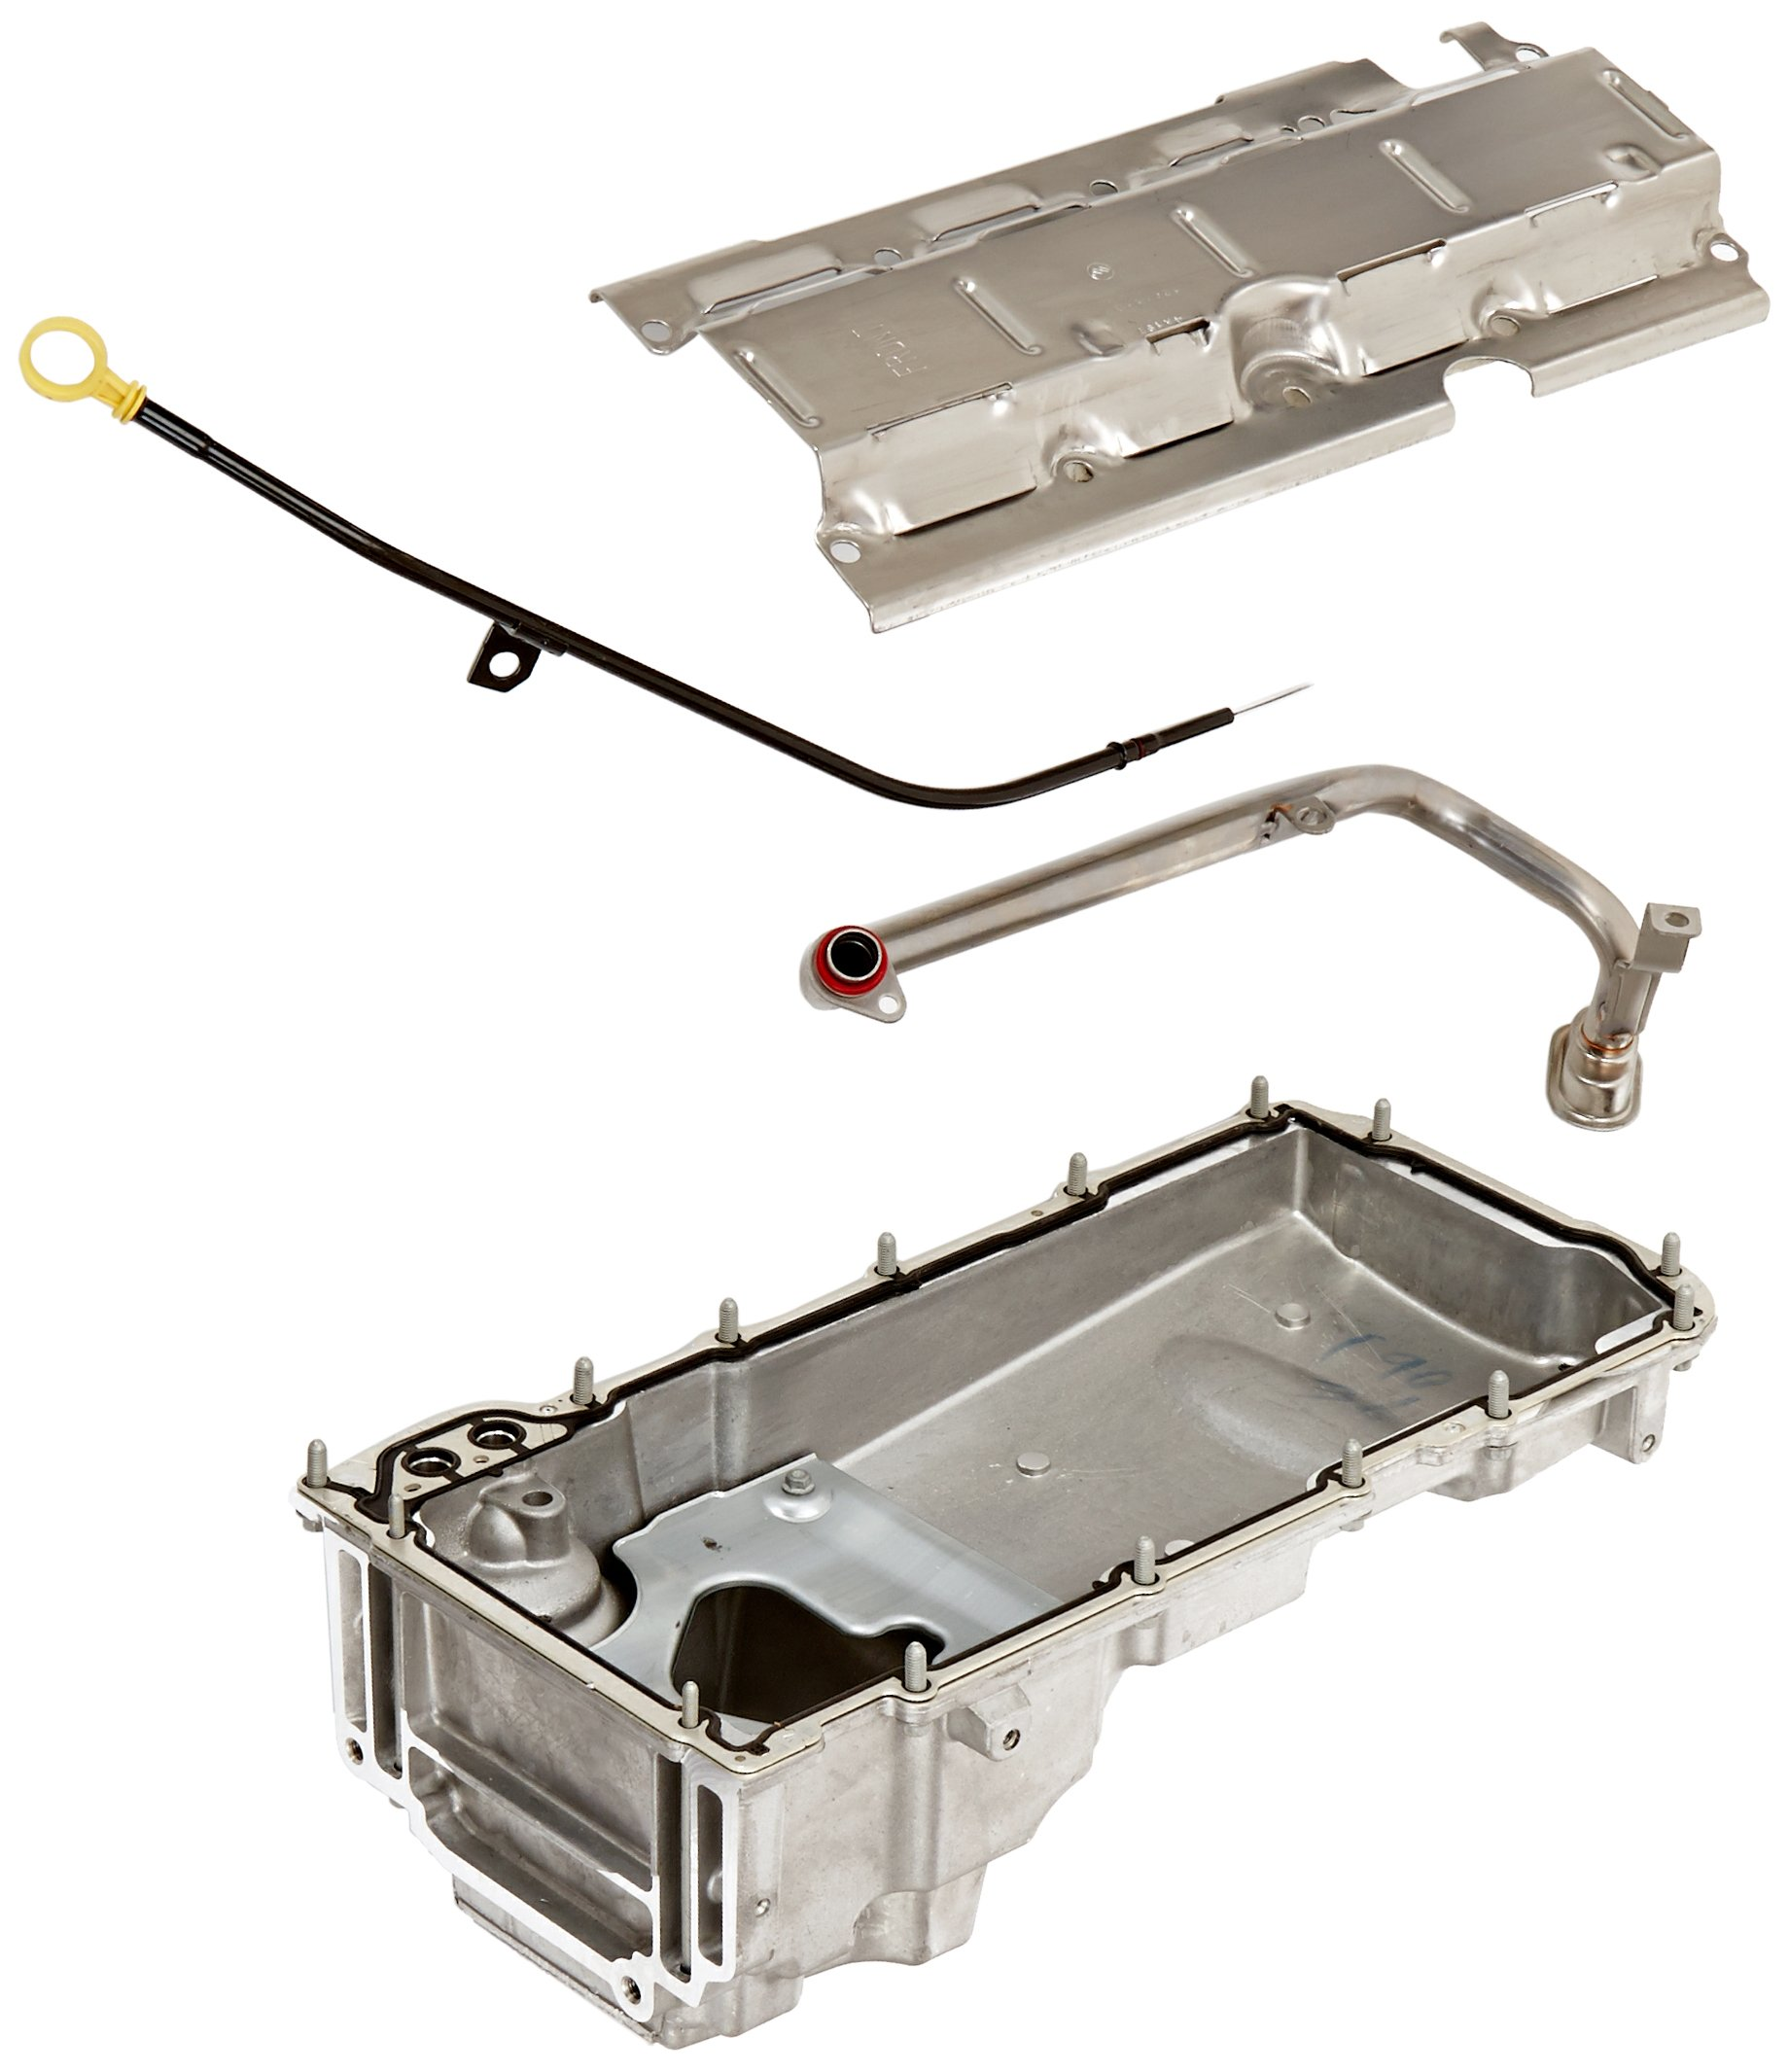 GM Performance Parts 19212593 Oil Pan by GM Performance Parts